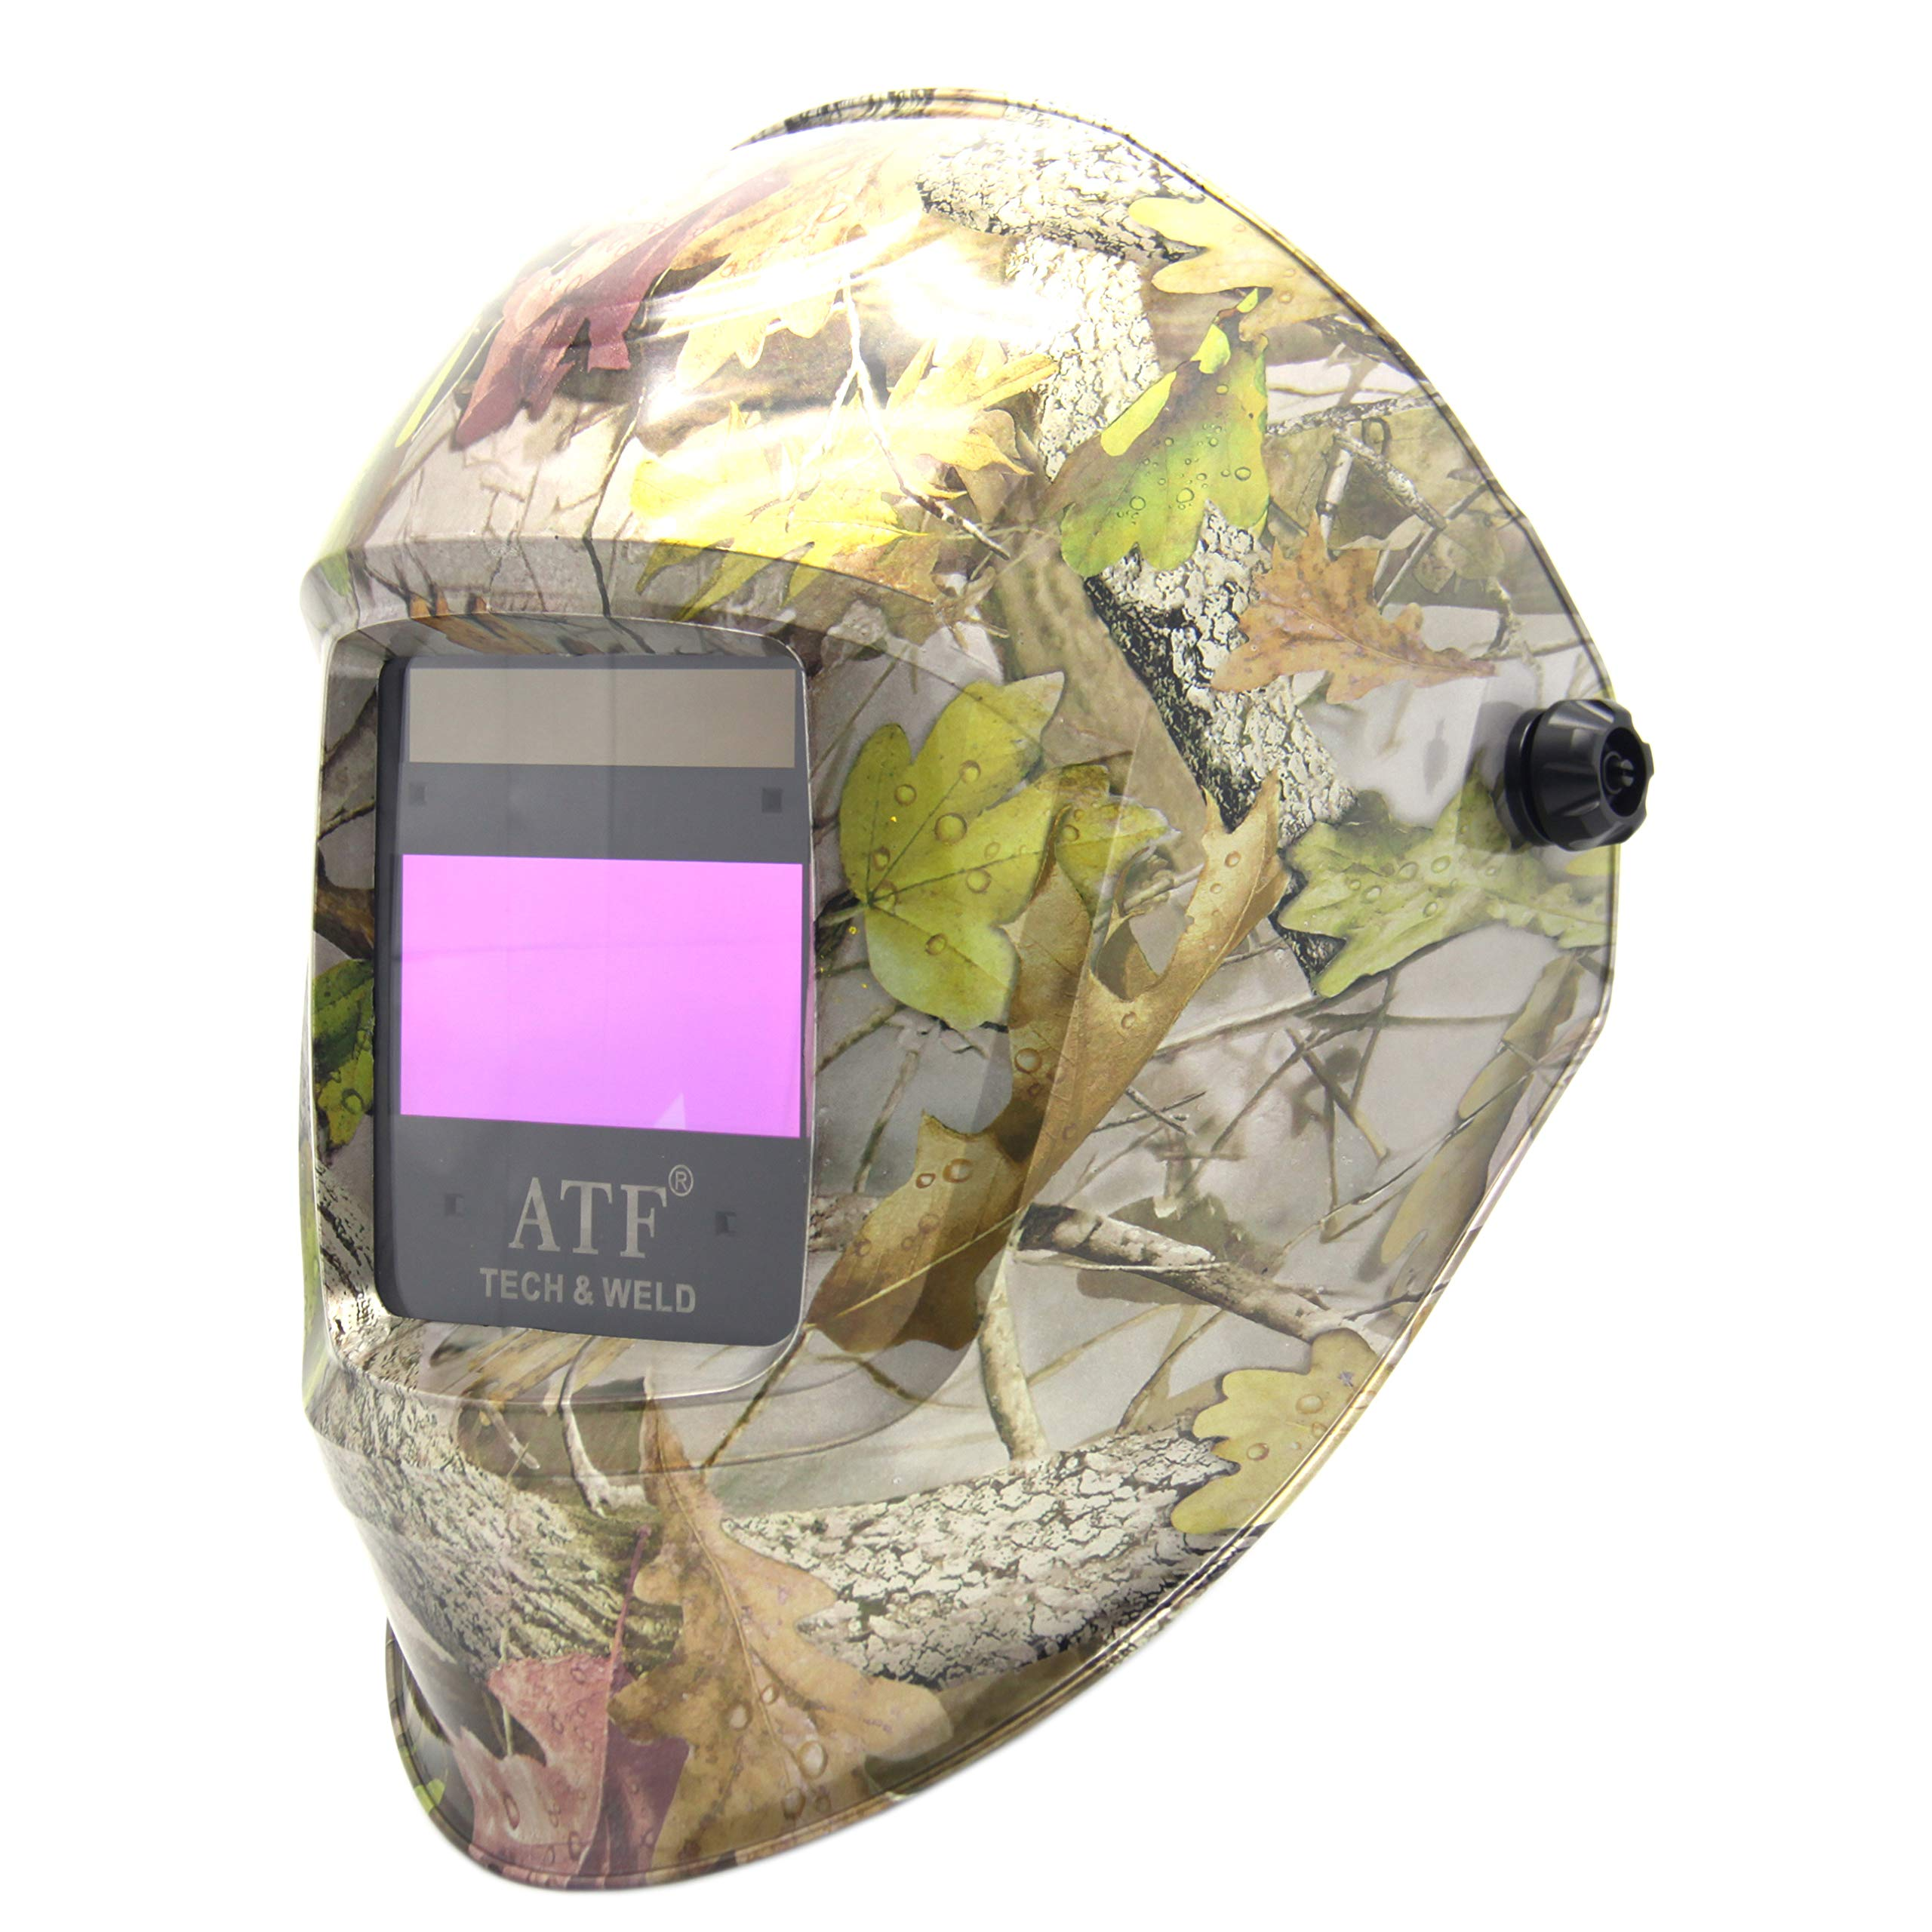 ATF Auto Darkening Solar Power Welding Helmet Forest Camo Leaf Mask with 1pc Extra Cover Lens Top Optical Class 1/1/1/1.Large View 3.94''x1.97'' Protect Face and Eyes From Risks